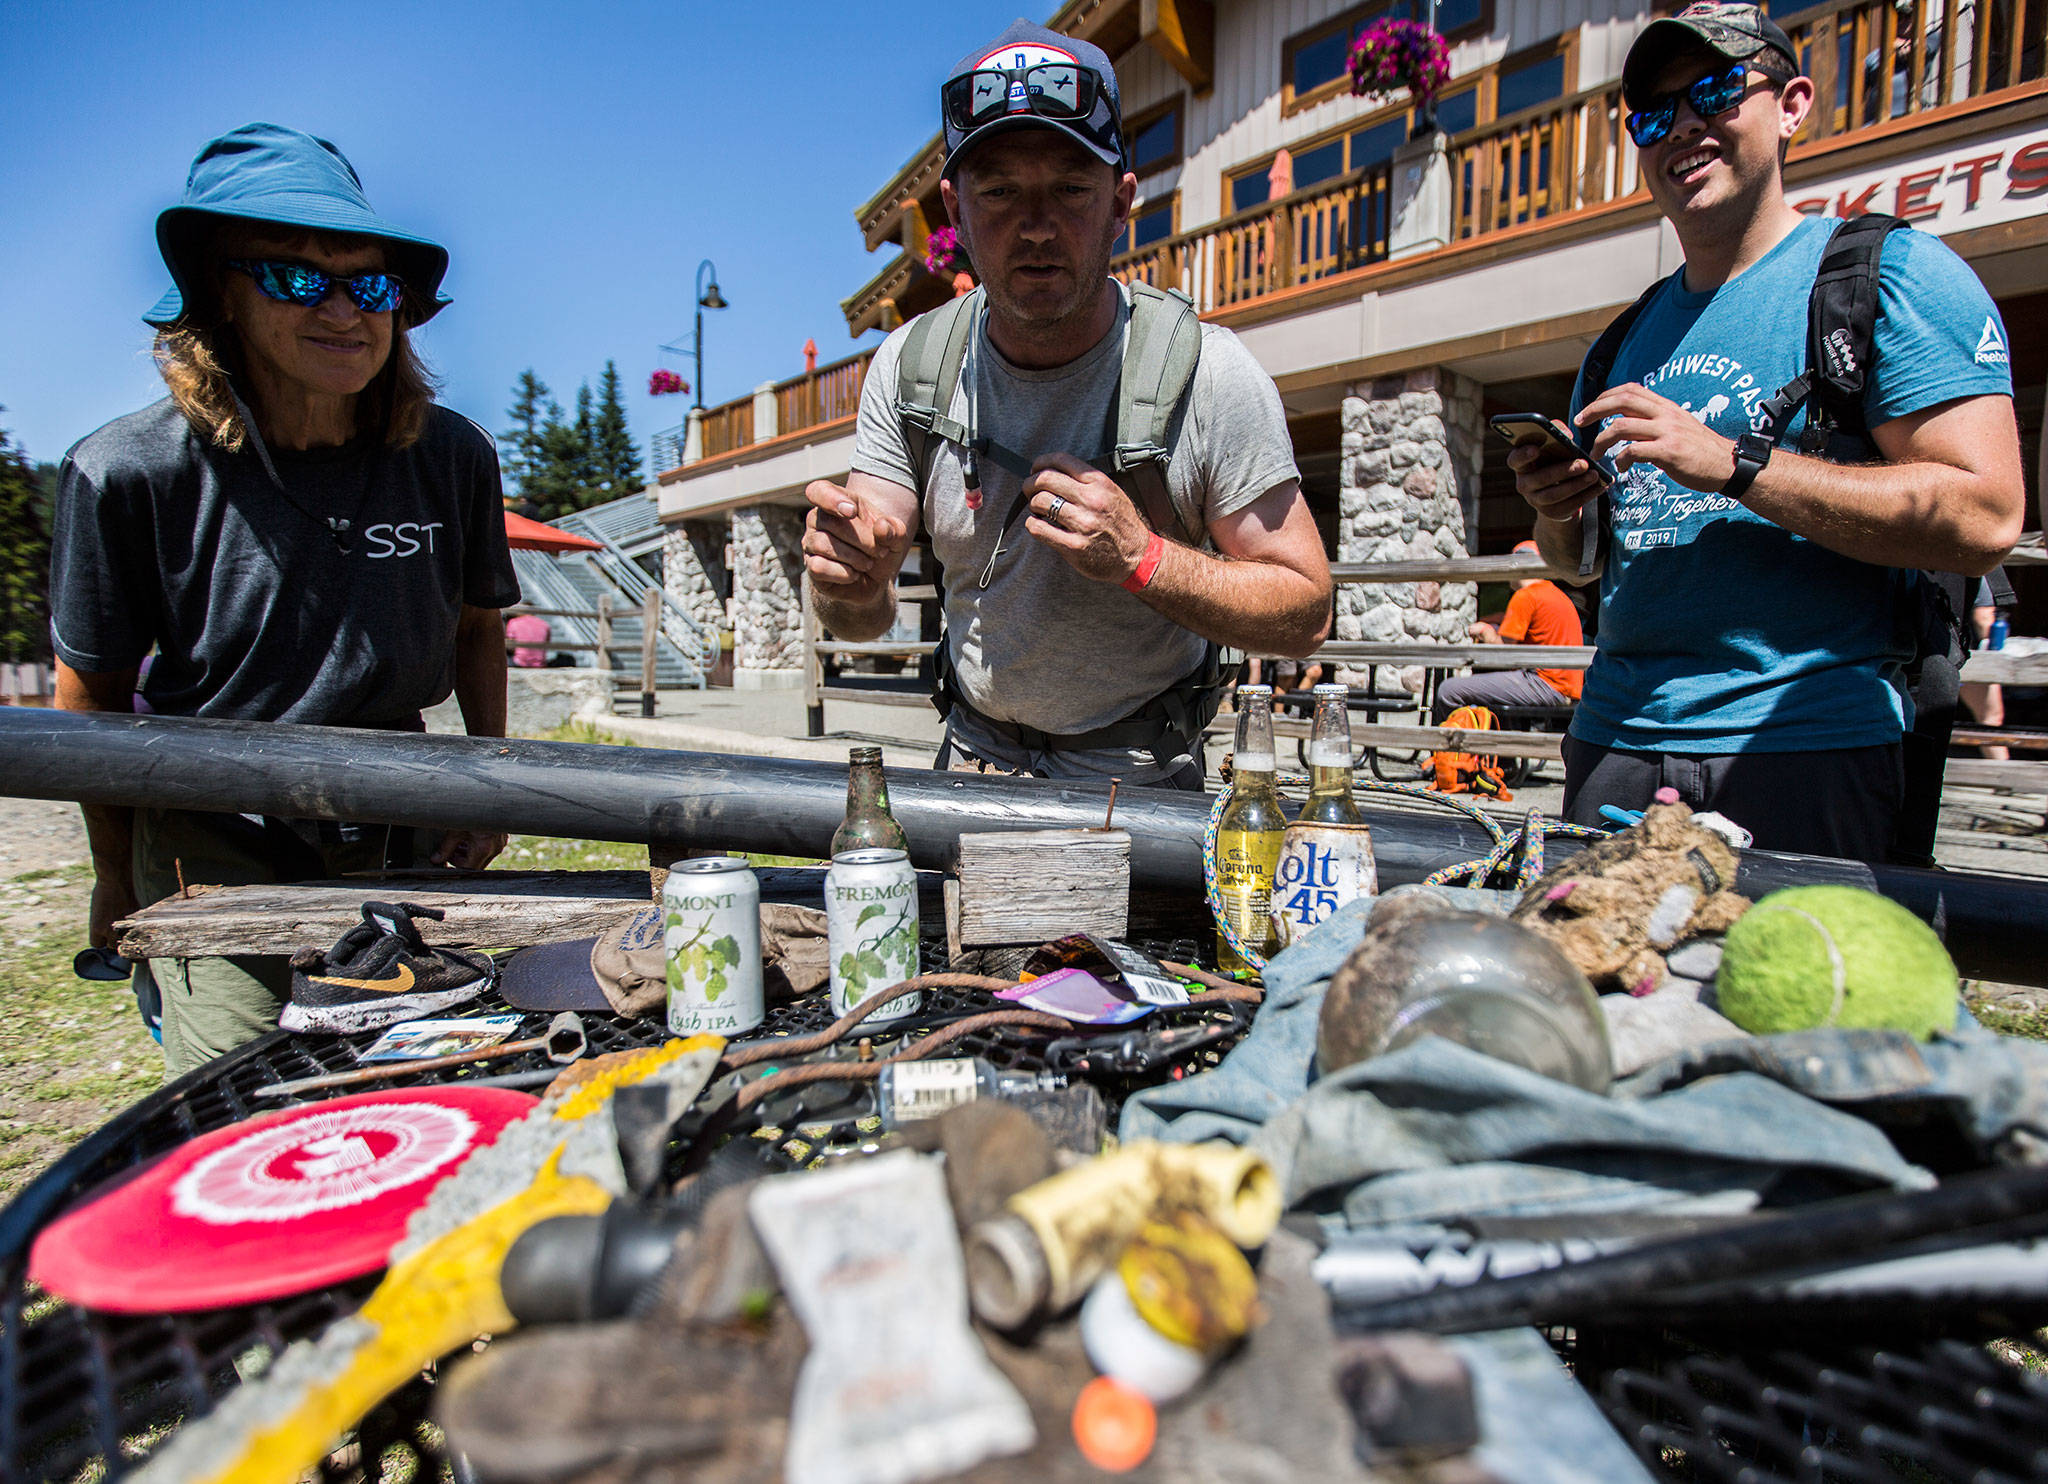 Volunteers survey some of the items they found — including unopened beers and a medical inhaler — during the annual trash pick-up at Stevens Pass on Aug. 7. (Olivia Vanni / The Herald)